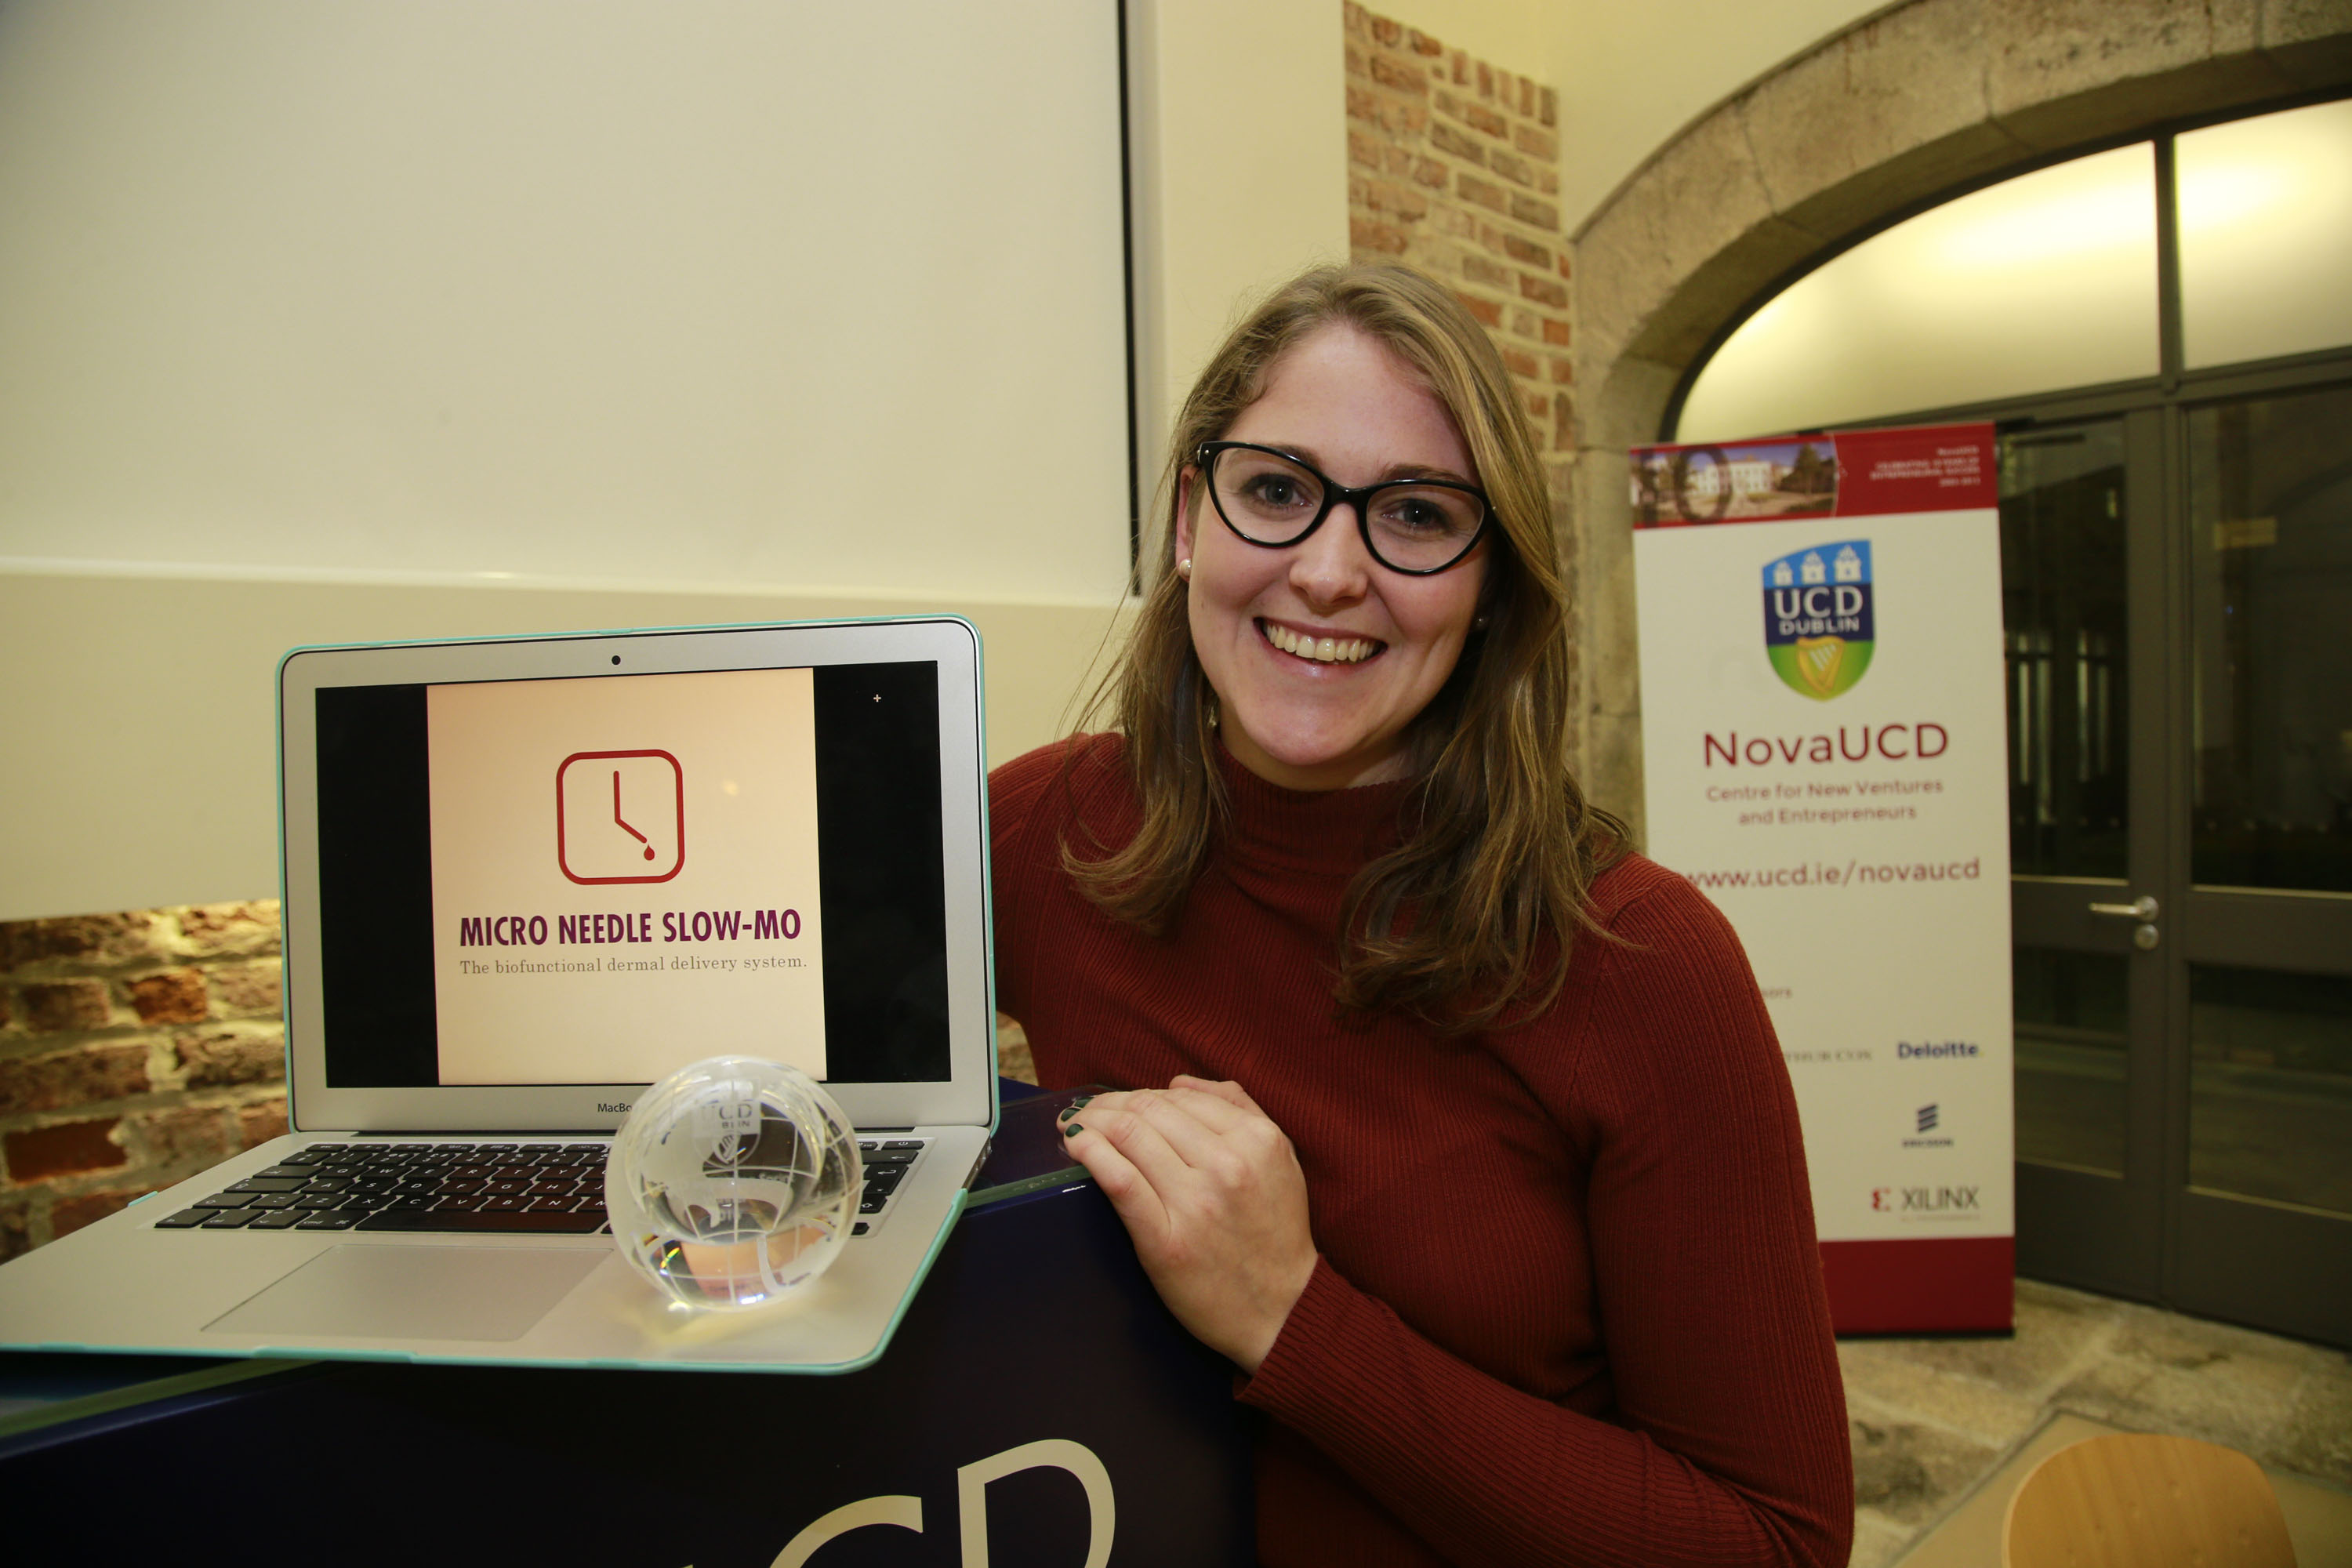 02/12/2016 - NovaUCD - Pictured at NovaUCD is Ellen Cahill, a PhD student in the UCD School of Mechanical and Materials Engineering, winner of the 2016 UCD MedTech Innovation Sprint Programme, with Micro Needle Slow-Mo, the biofunctional dermal delivery system. Photograph Nick Bradshaw